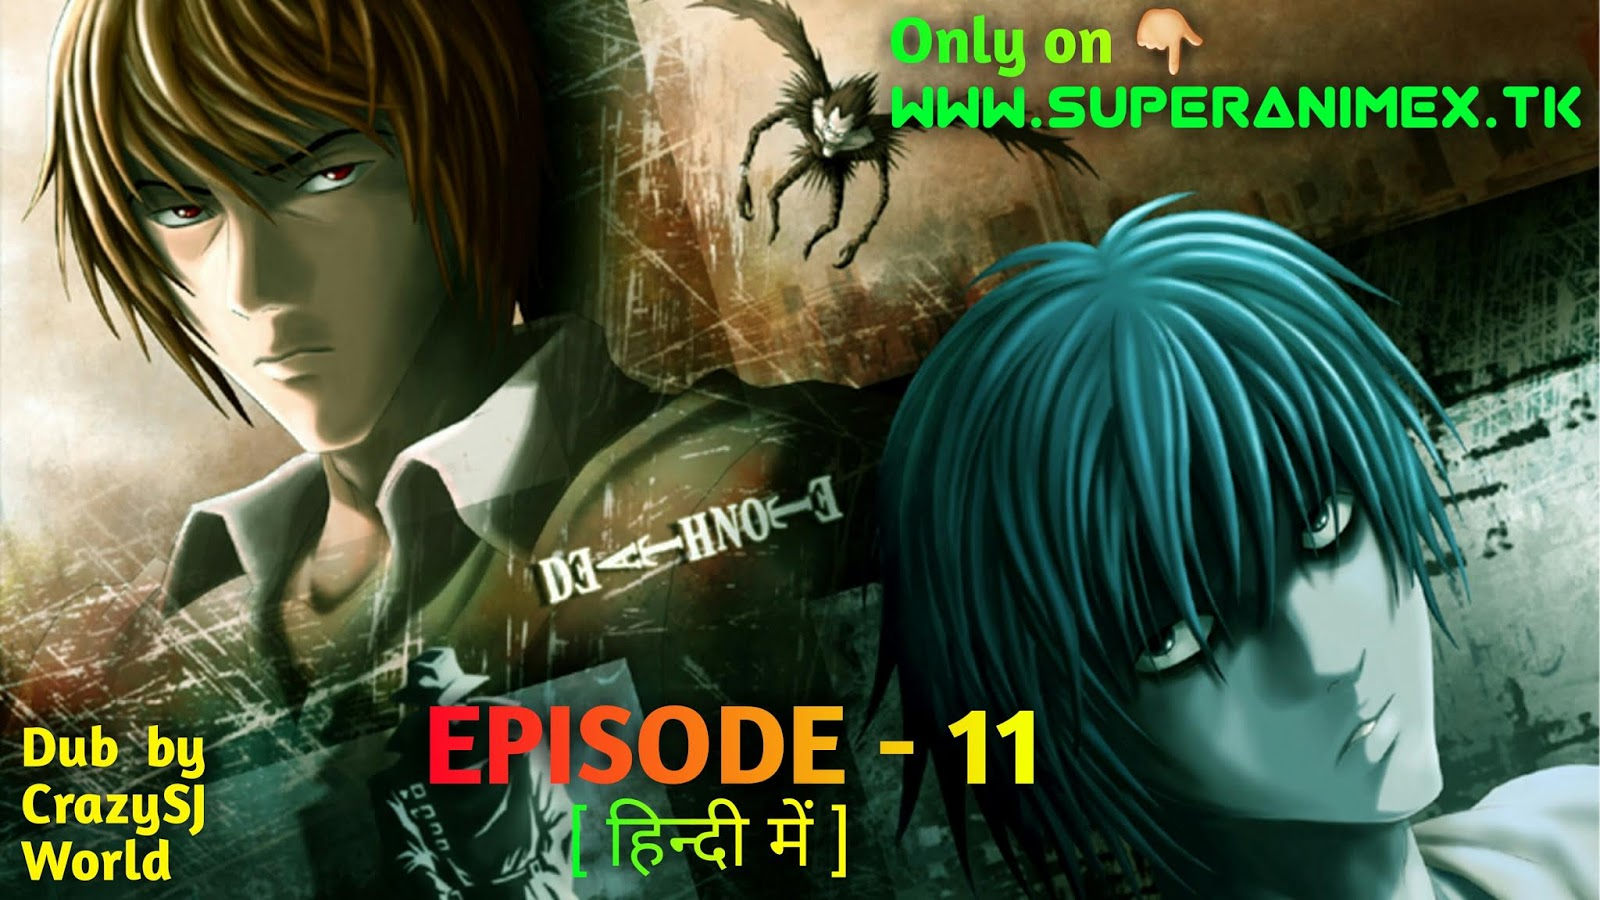 Death note ( episode 11 ) super animex.